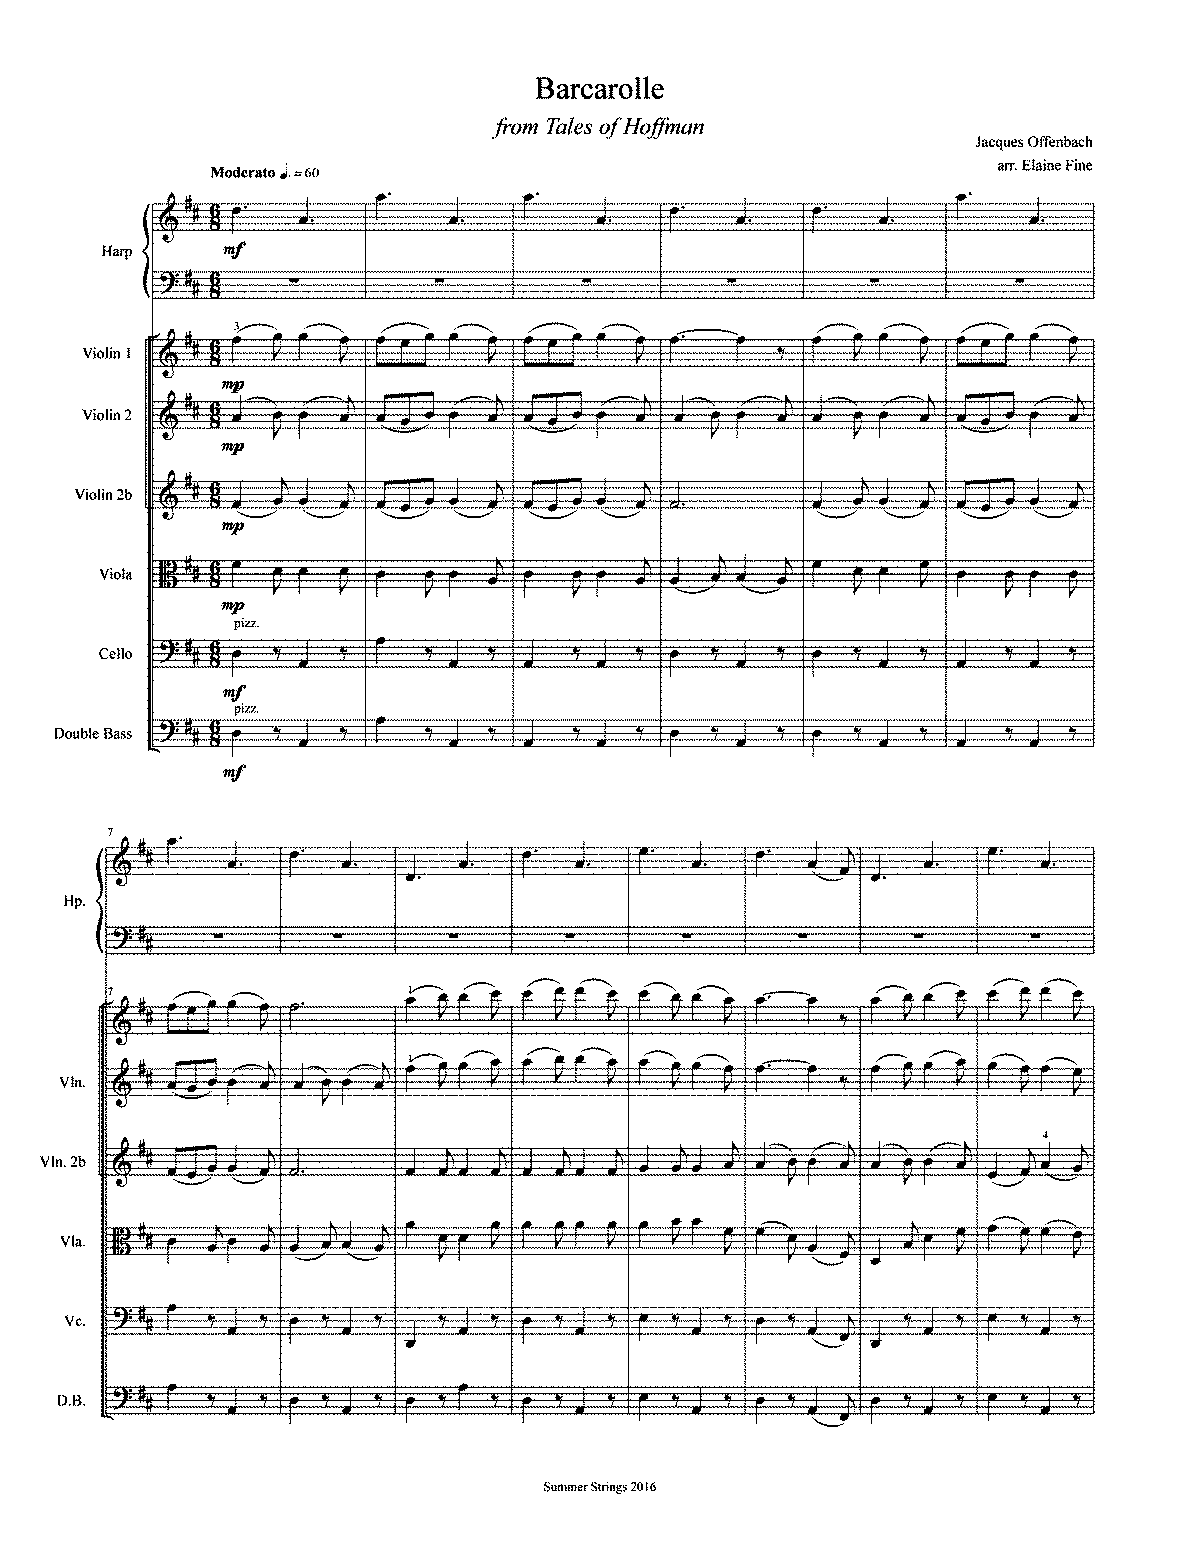 PMLP06710-Barcarolle for String Orchestra and Harp Score and Parts.pdf